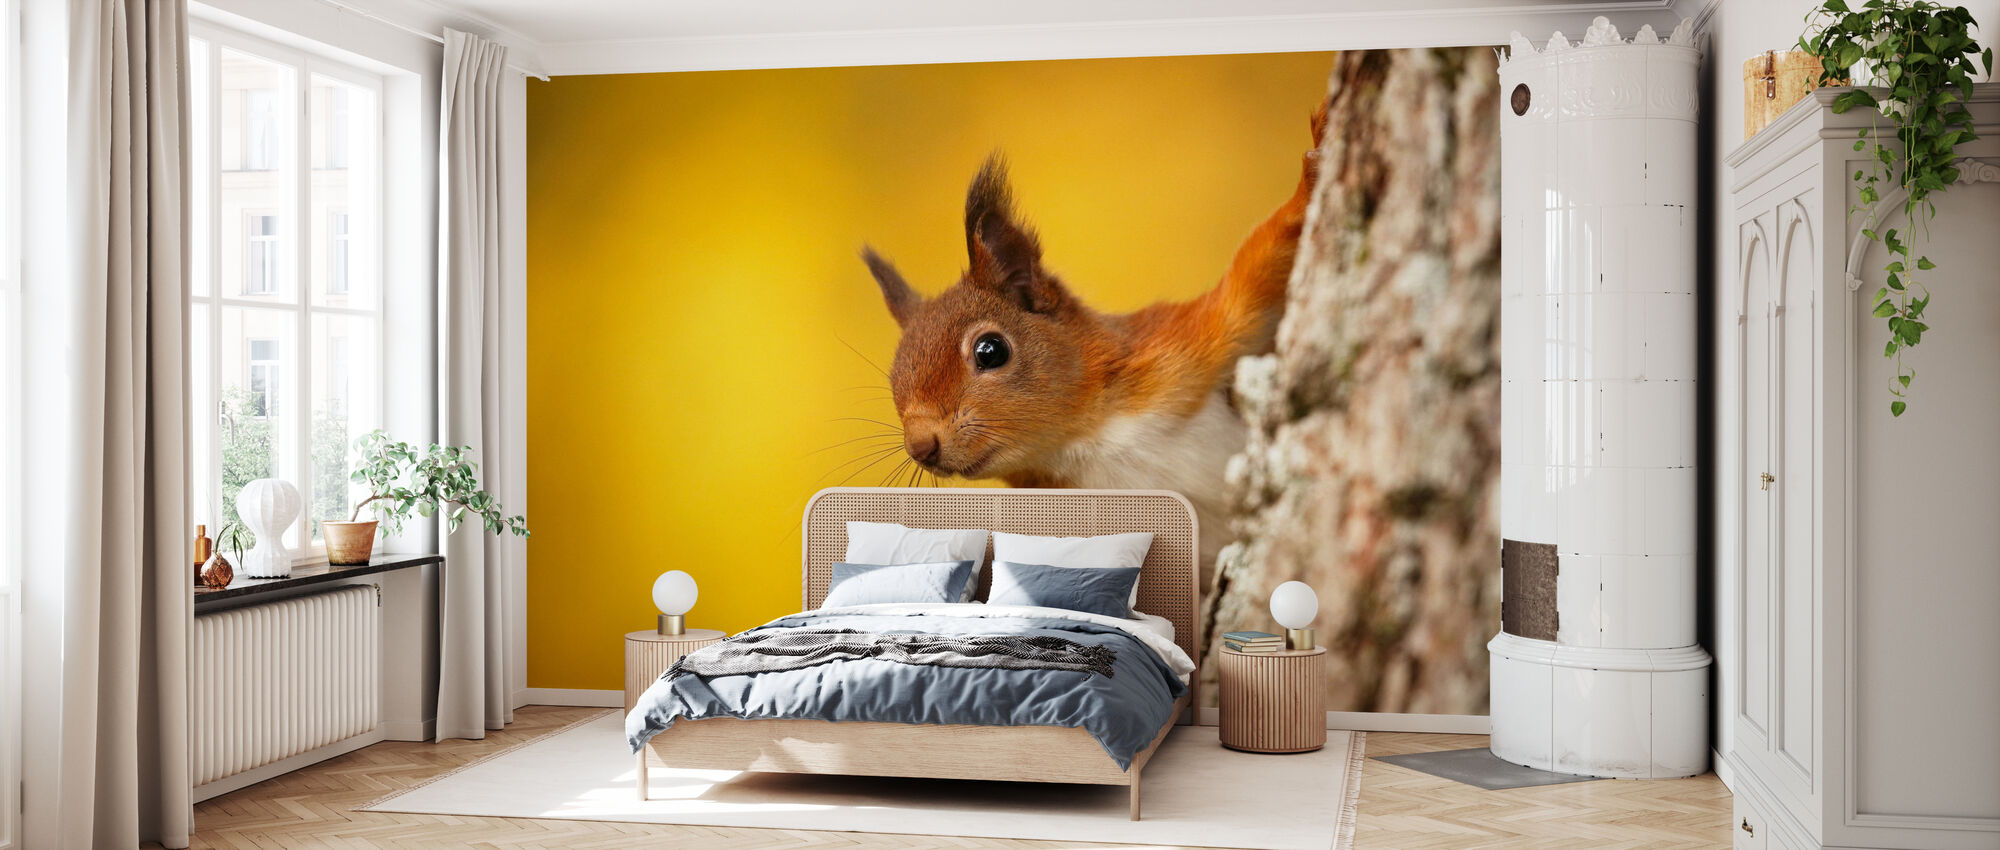 Red Squirrel with Autumn Colors - Wallpaper - Bedroom